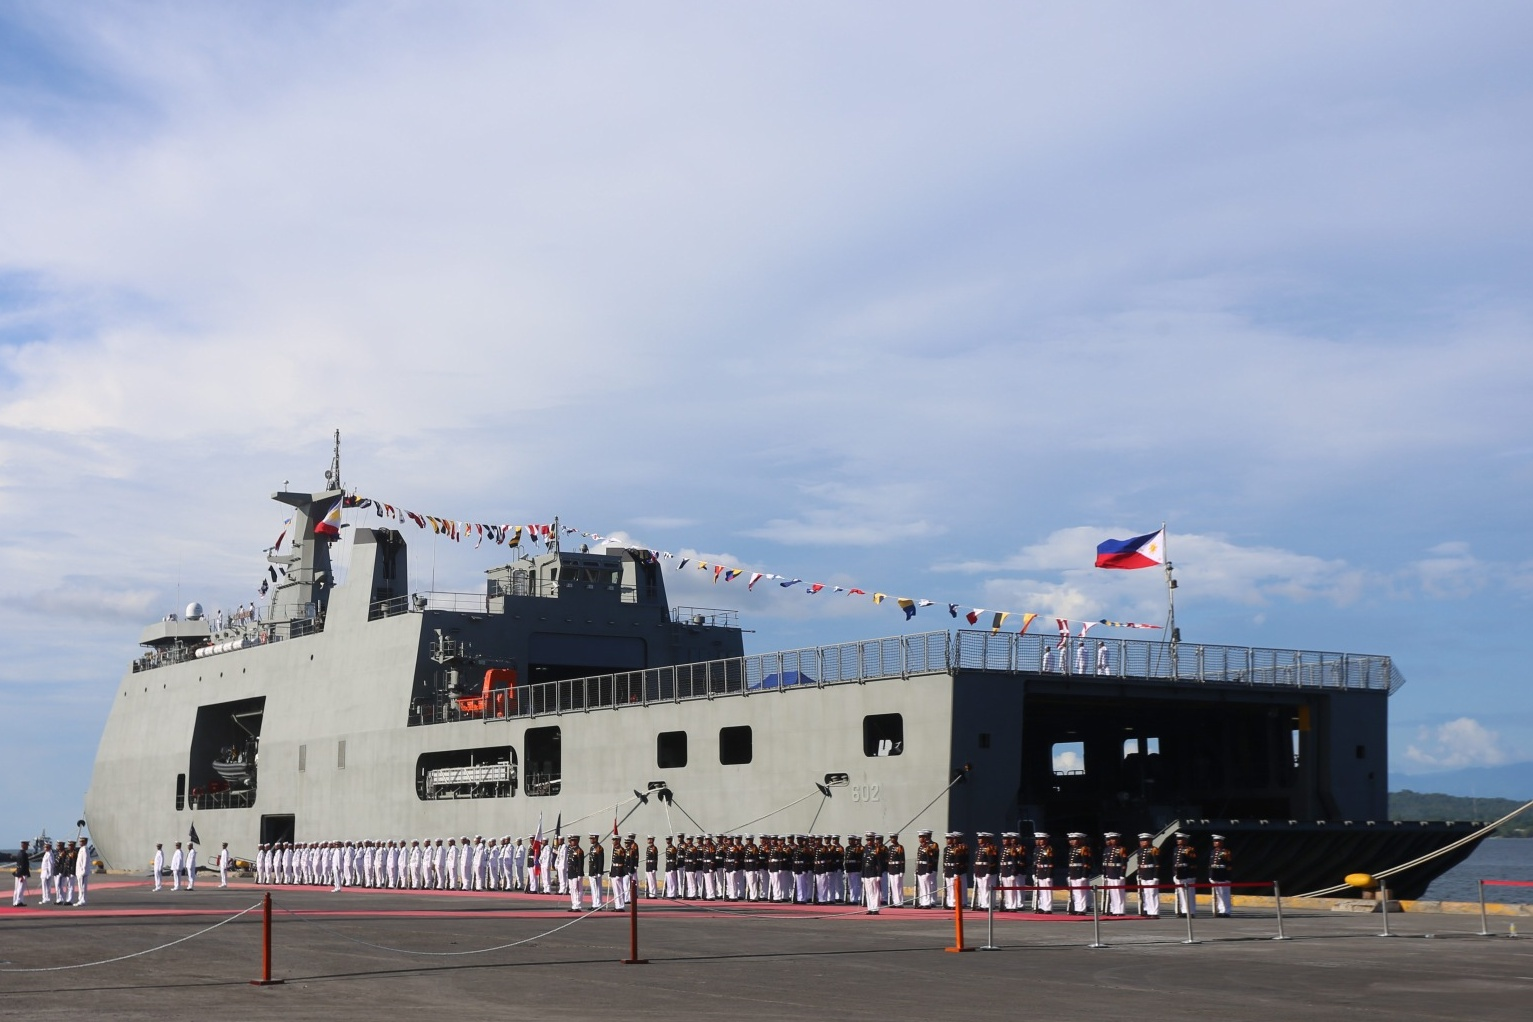 BRP DAVAO DEL SUR. One of the biggest ships of the Philippine Navy, the BRP Davao del Sur is commissioned on May 31, 2017. Photo by Manman Dejeto/Rappler